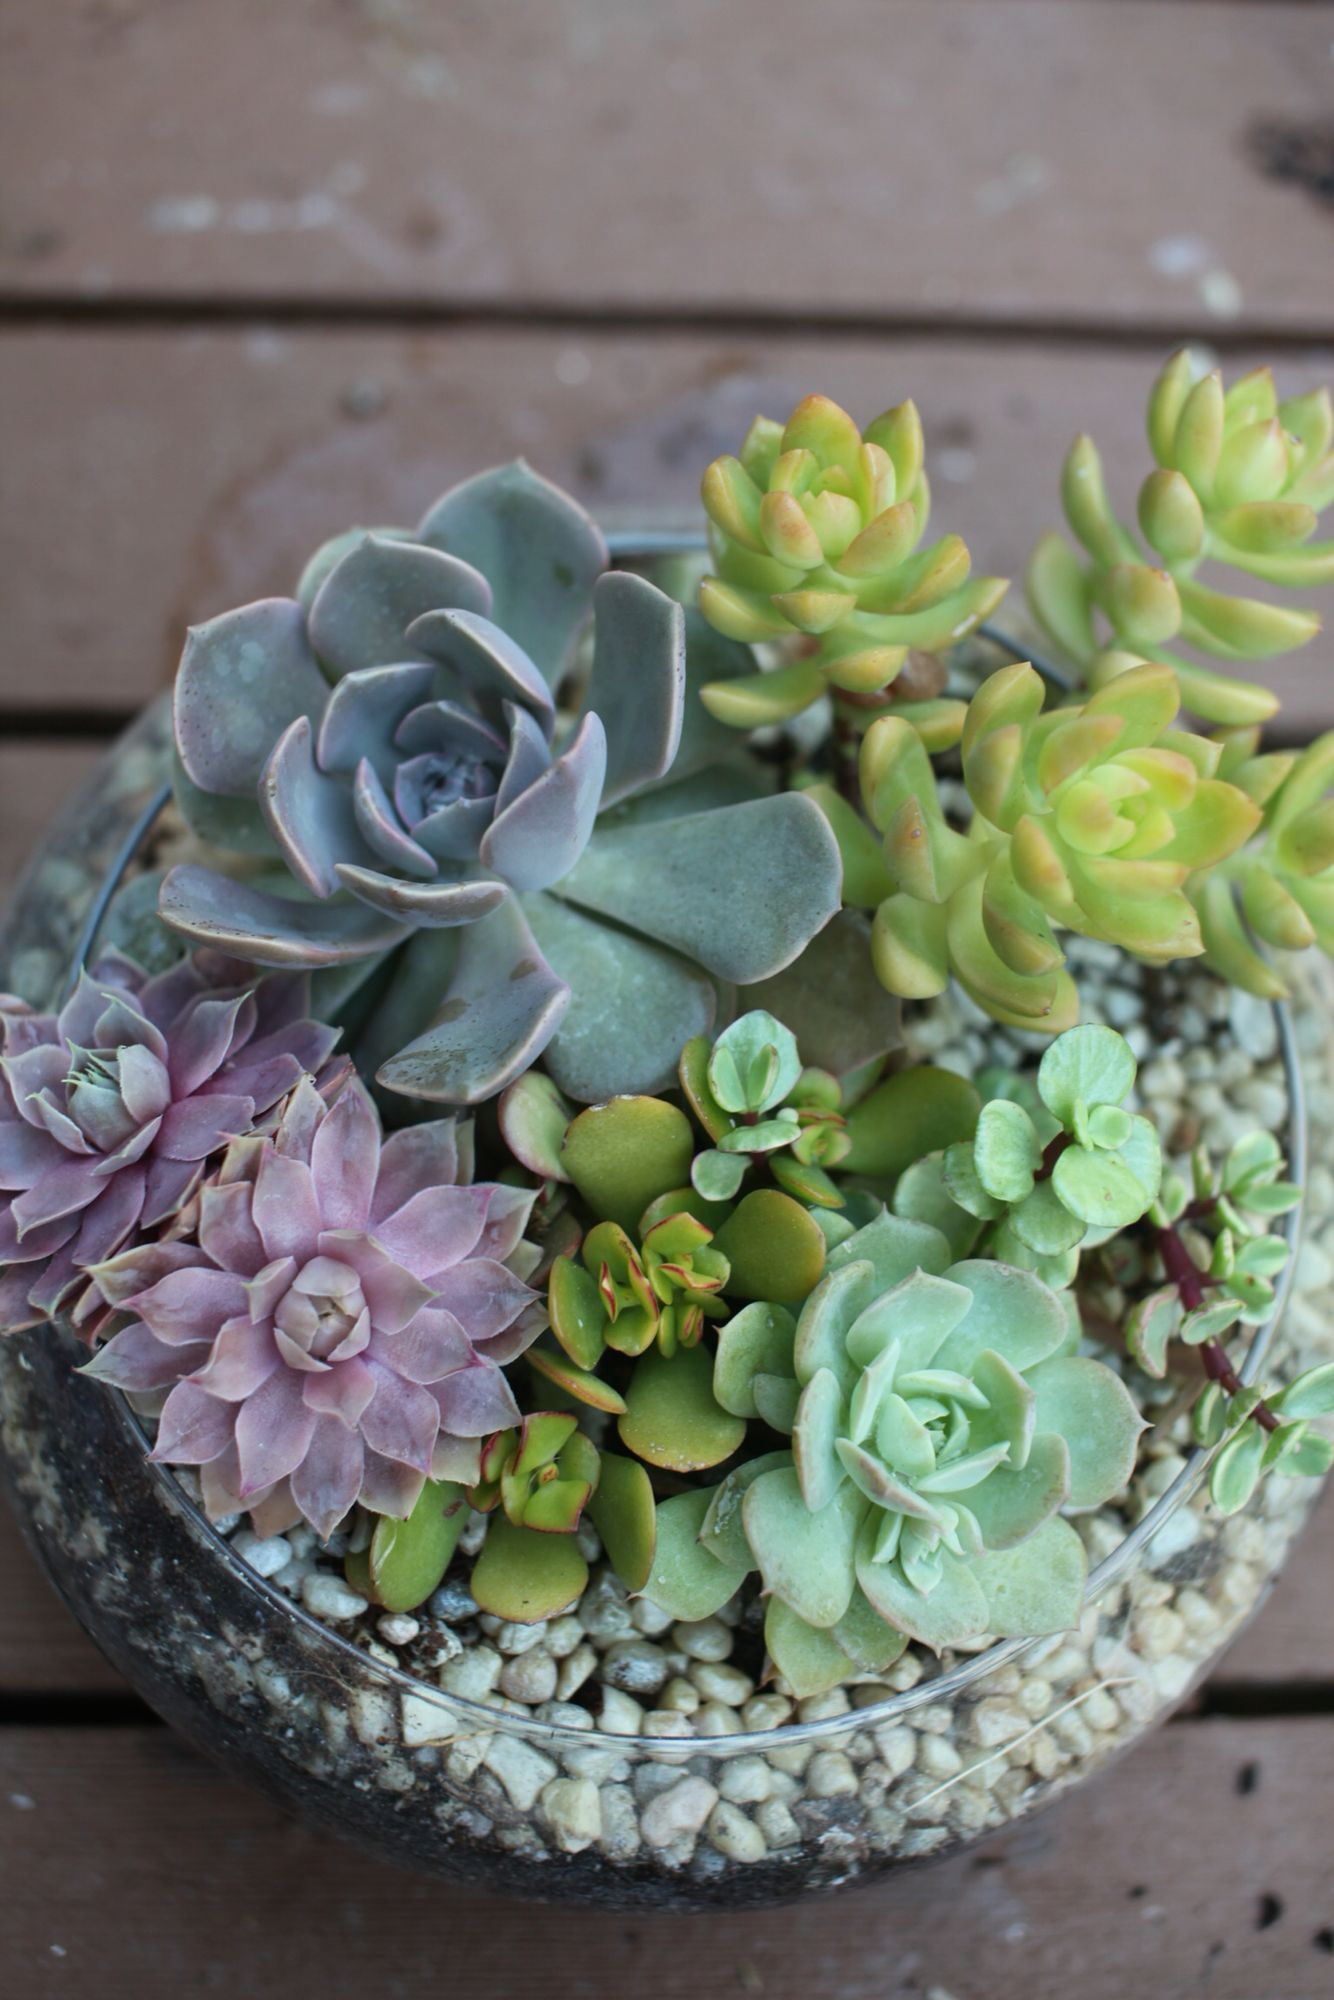 Succulents in a shallow glass bowl